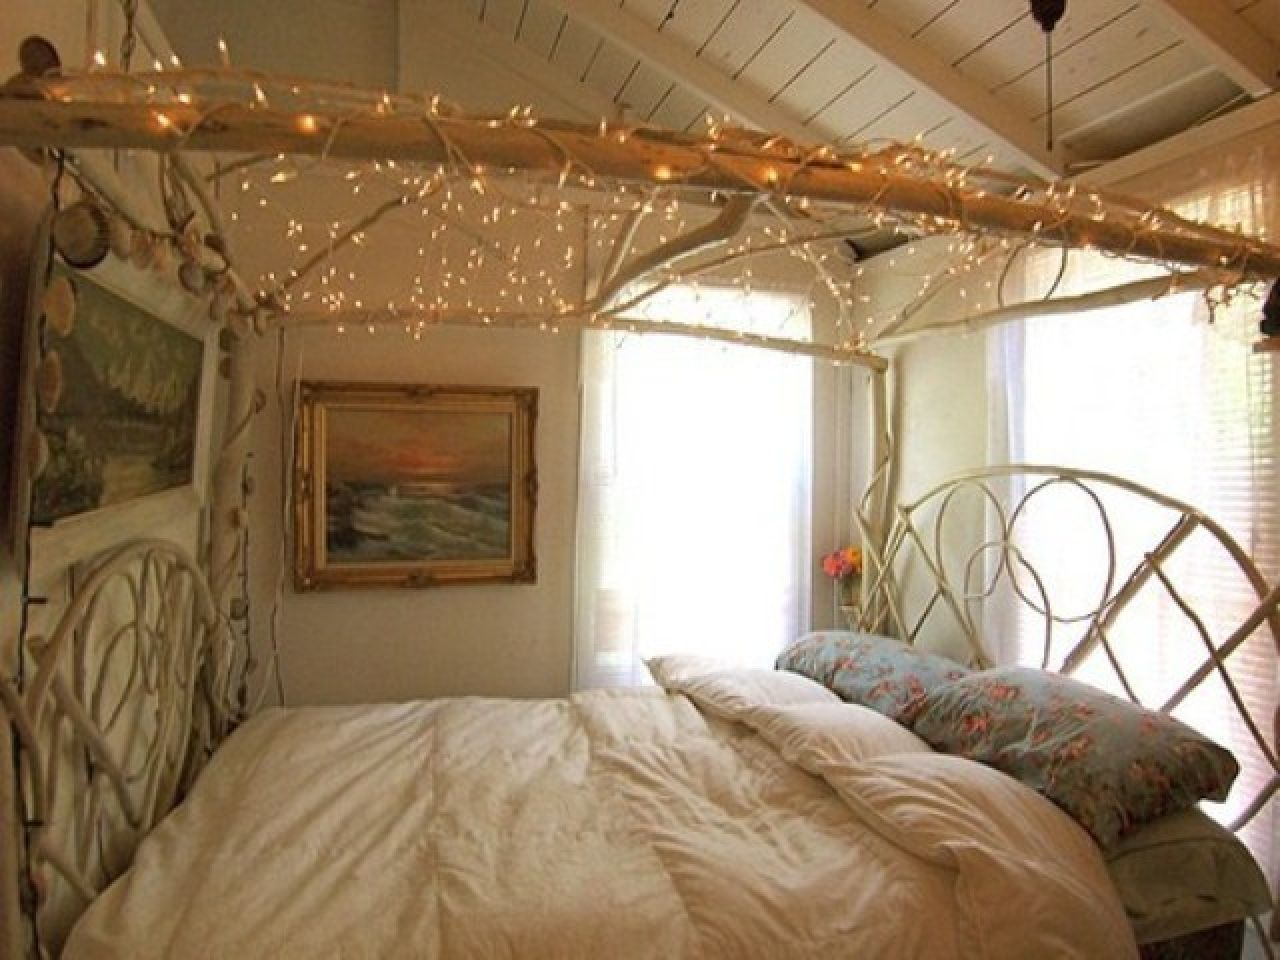 Uncategorized Pretty Fairy Lights Bedroom cute fairy lights for bedroom training4green com interior home bedroom